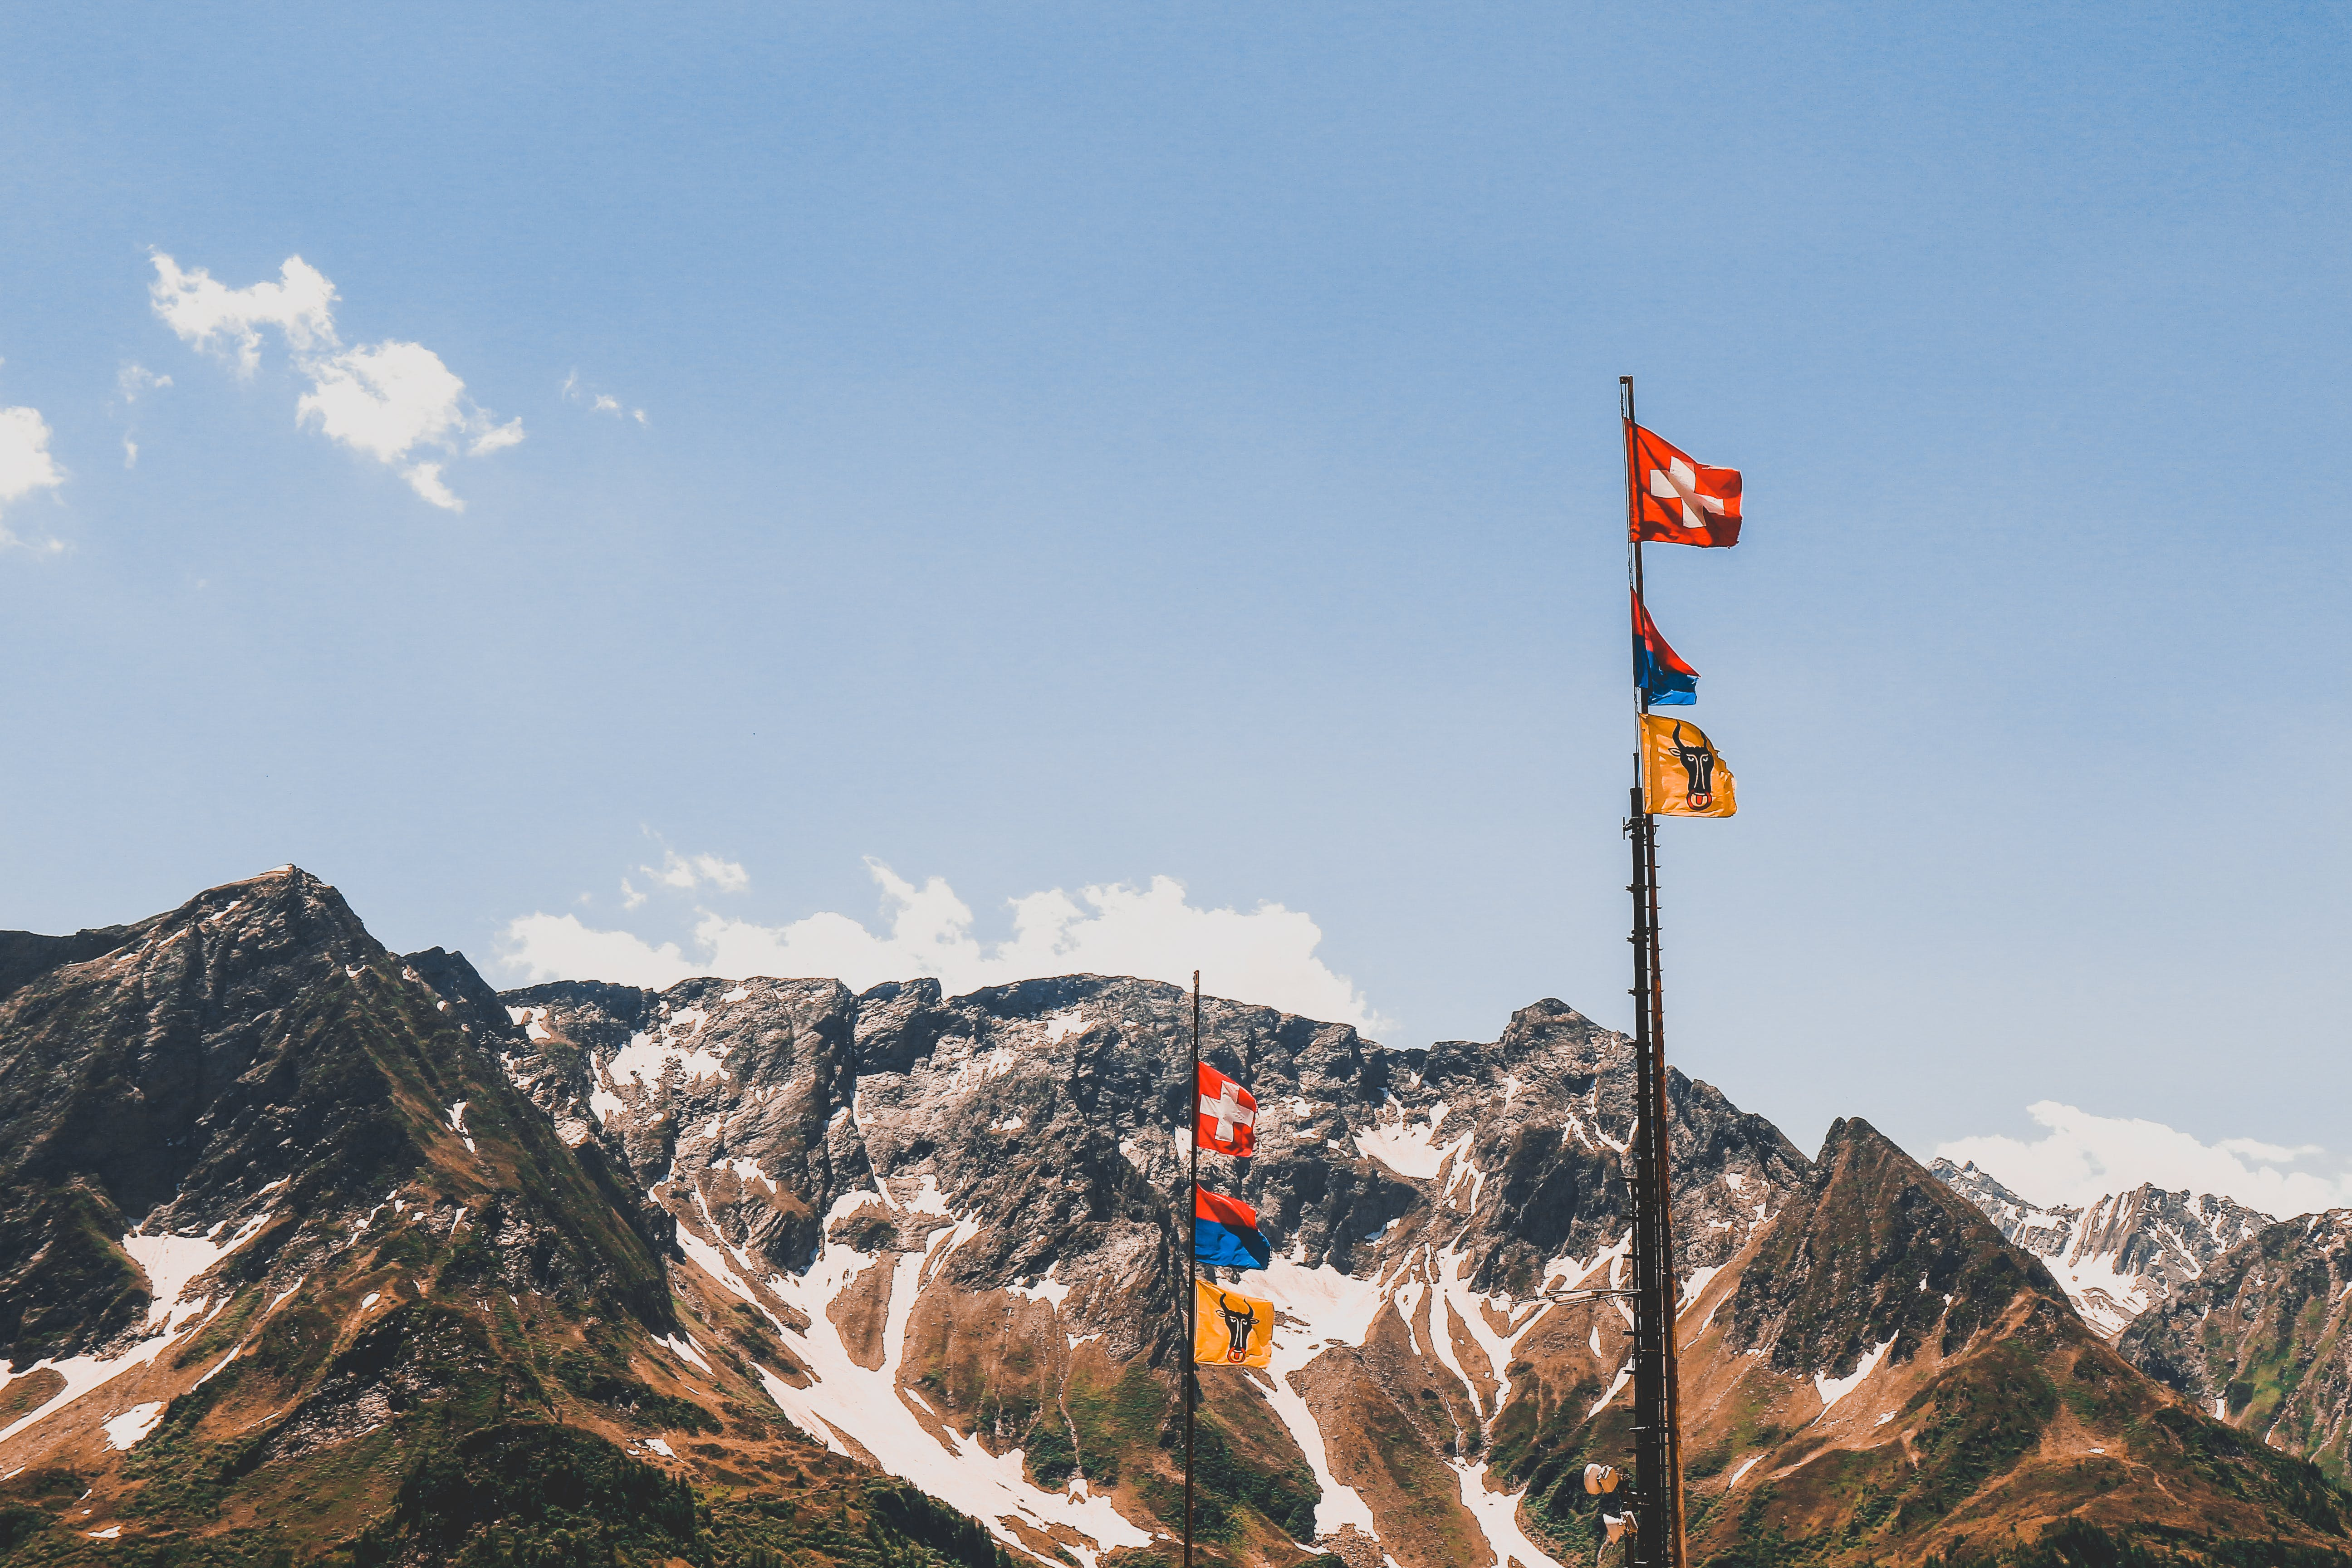 Photography Of Mountain Summit With Flags